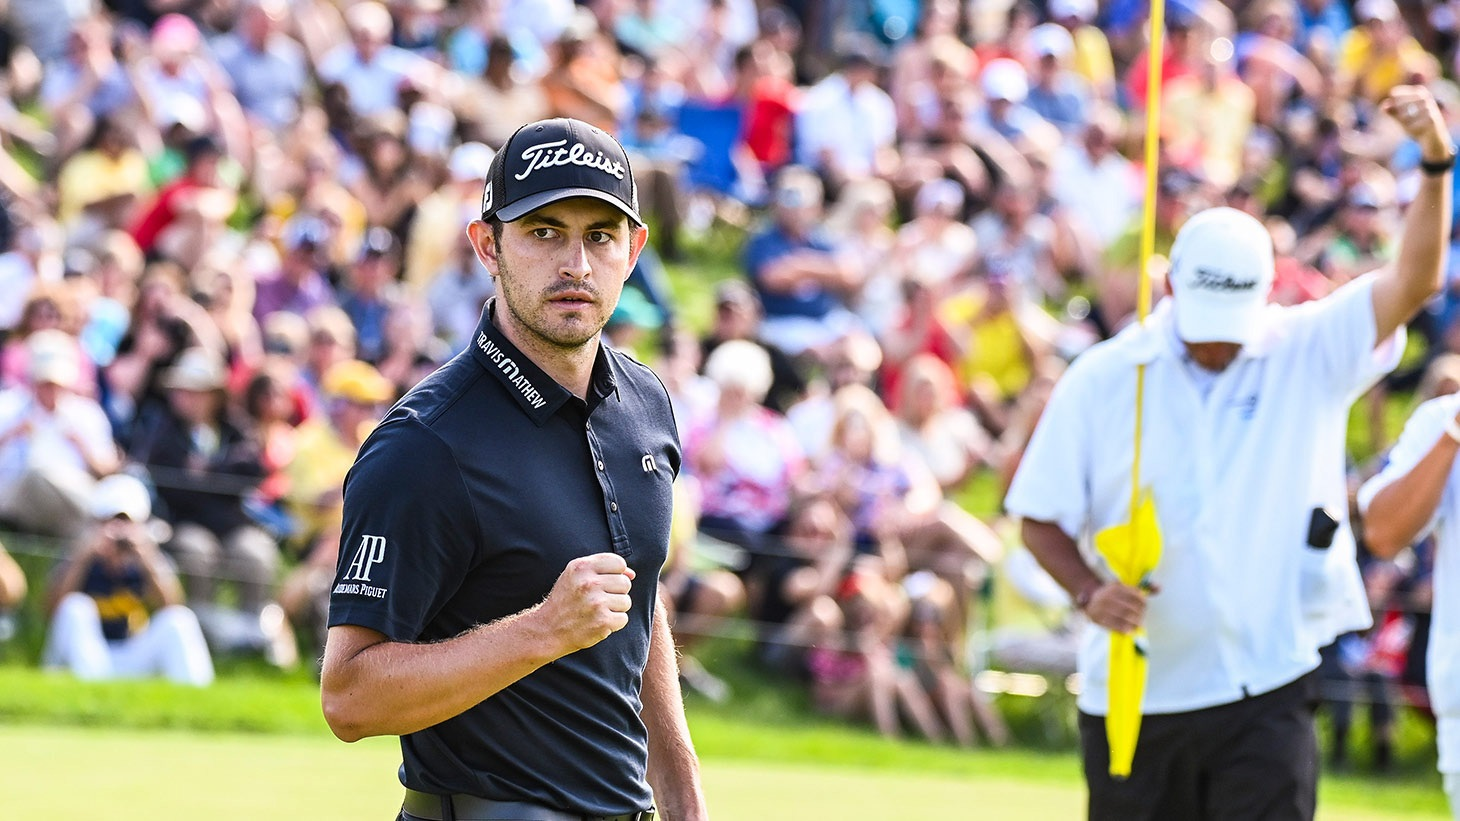 Patrick Cantlay reacts after holng the winning putt with his Pro V1 golf ball at the 2019 Memorial Tournament